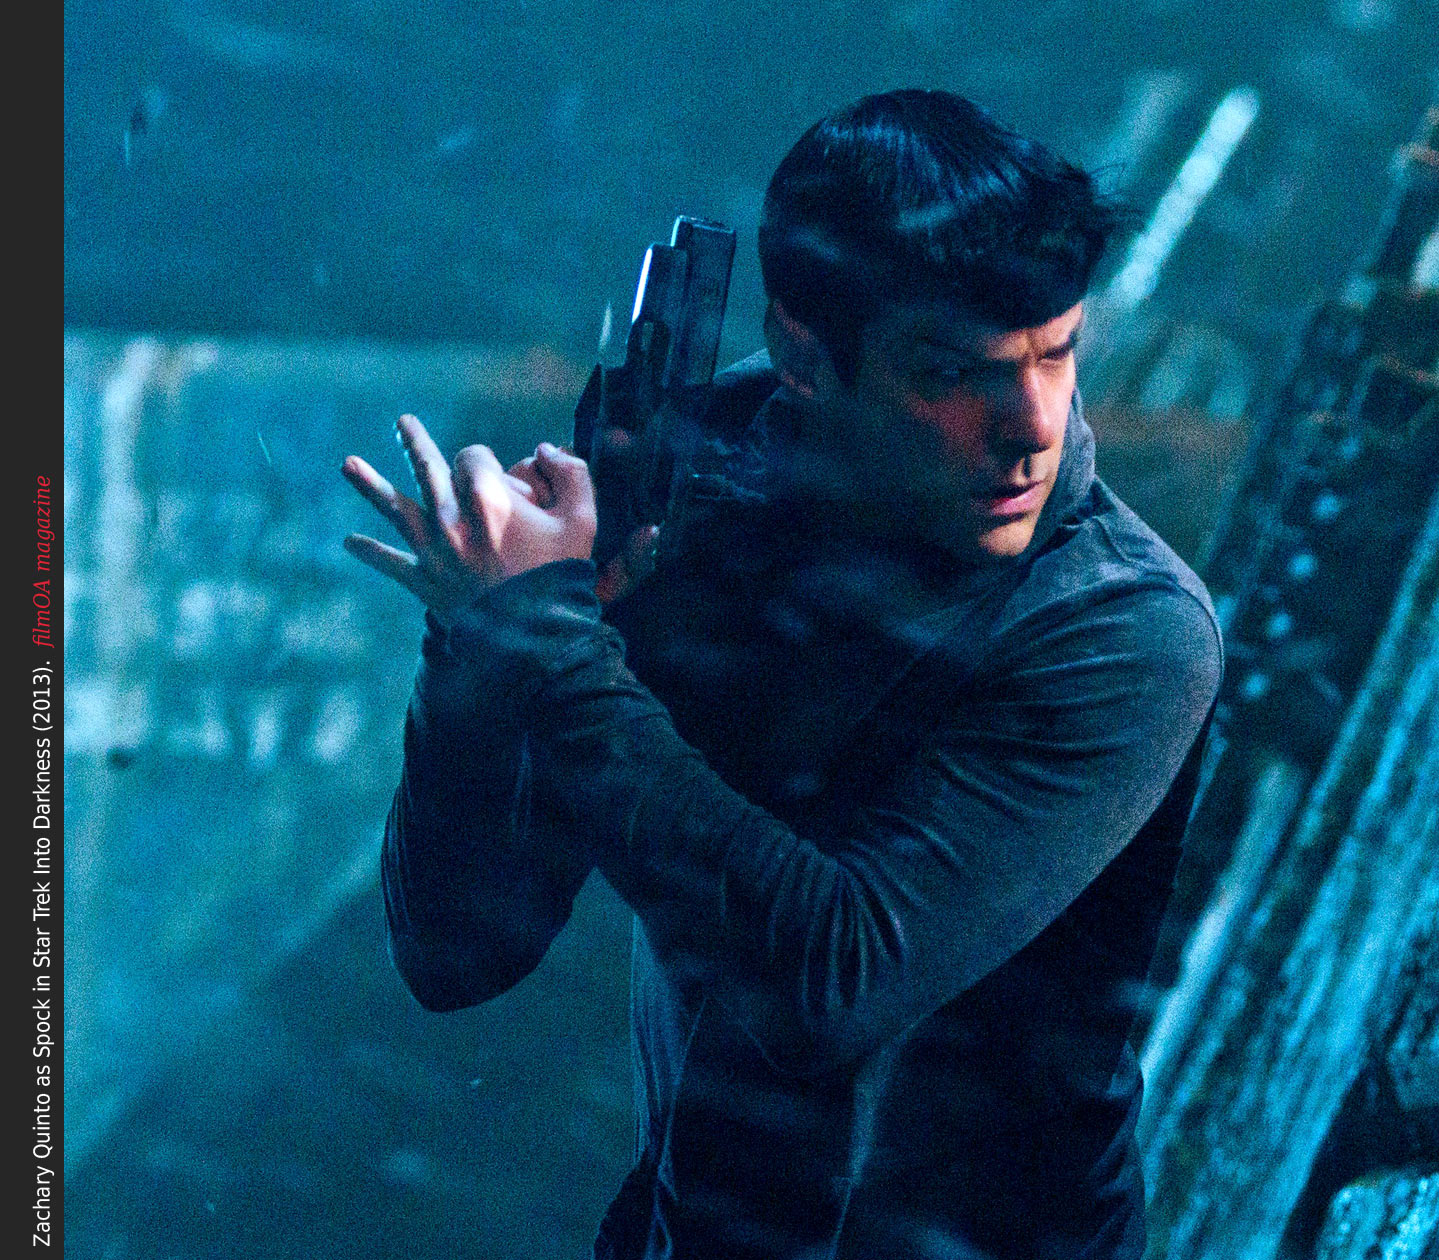 Zachary Quinto shows emotion as Spock in Star Trek Into ...